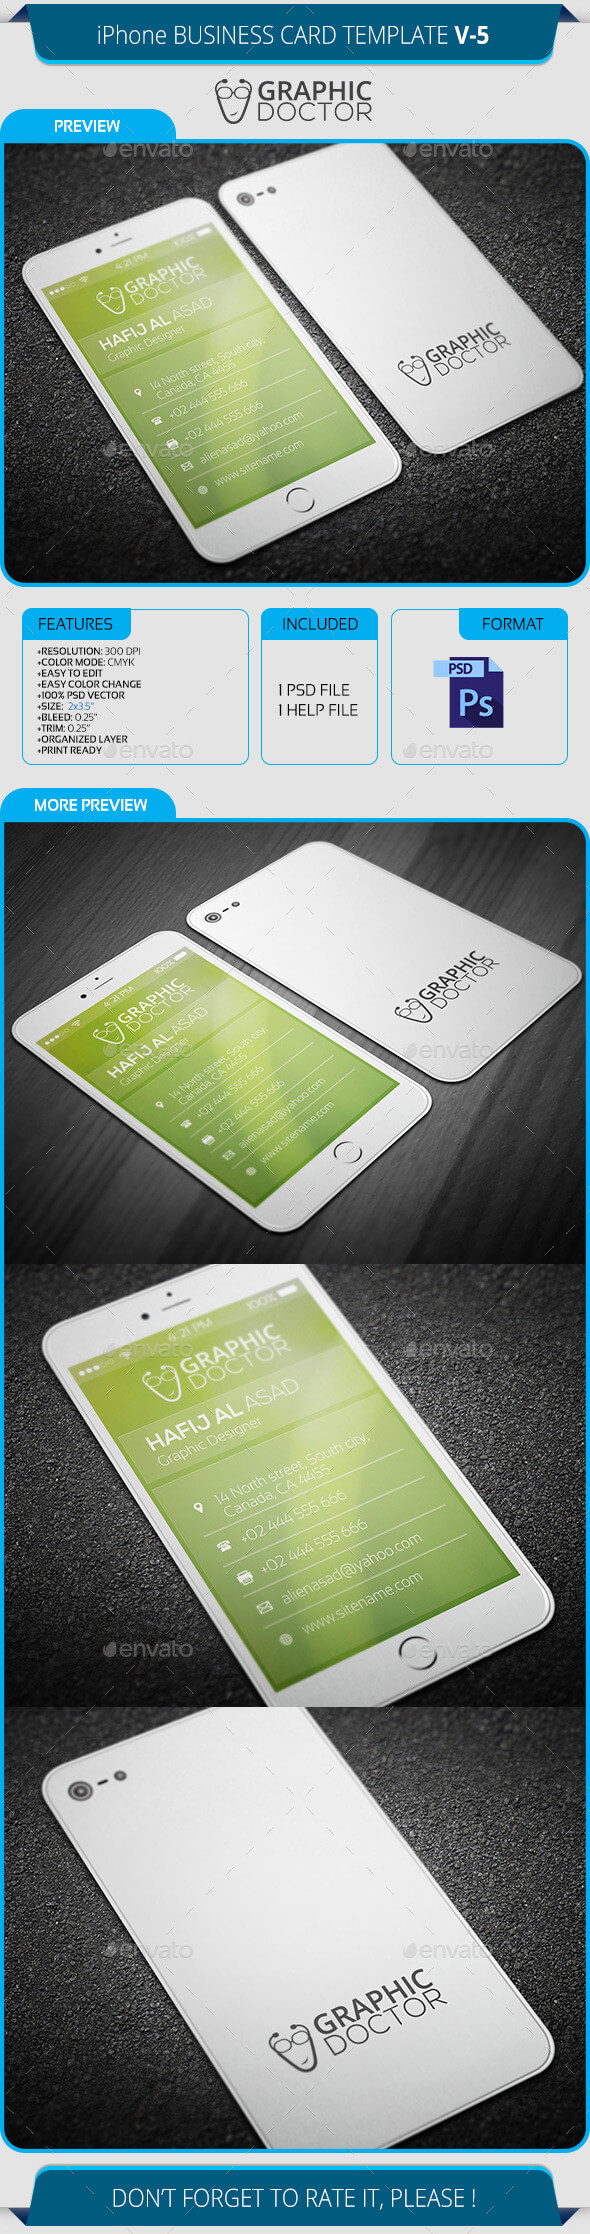 Iphone Business Card Template V-5 inside Iphone Business Card Template